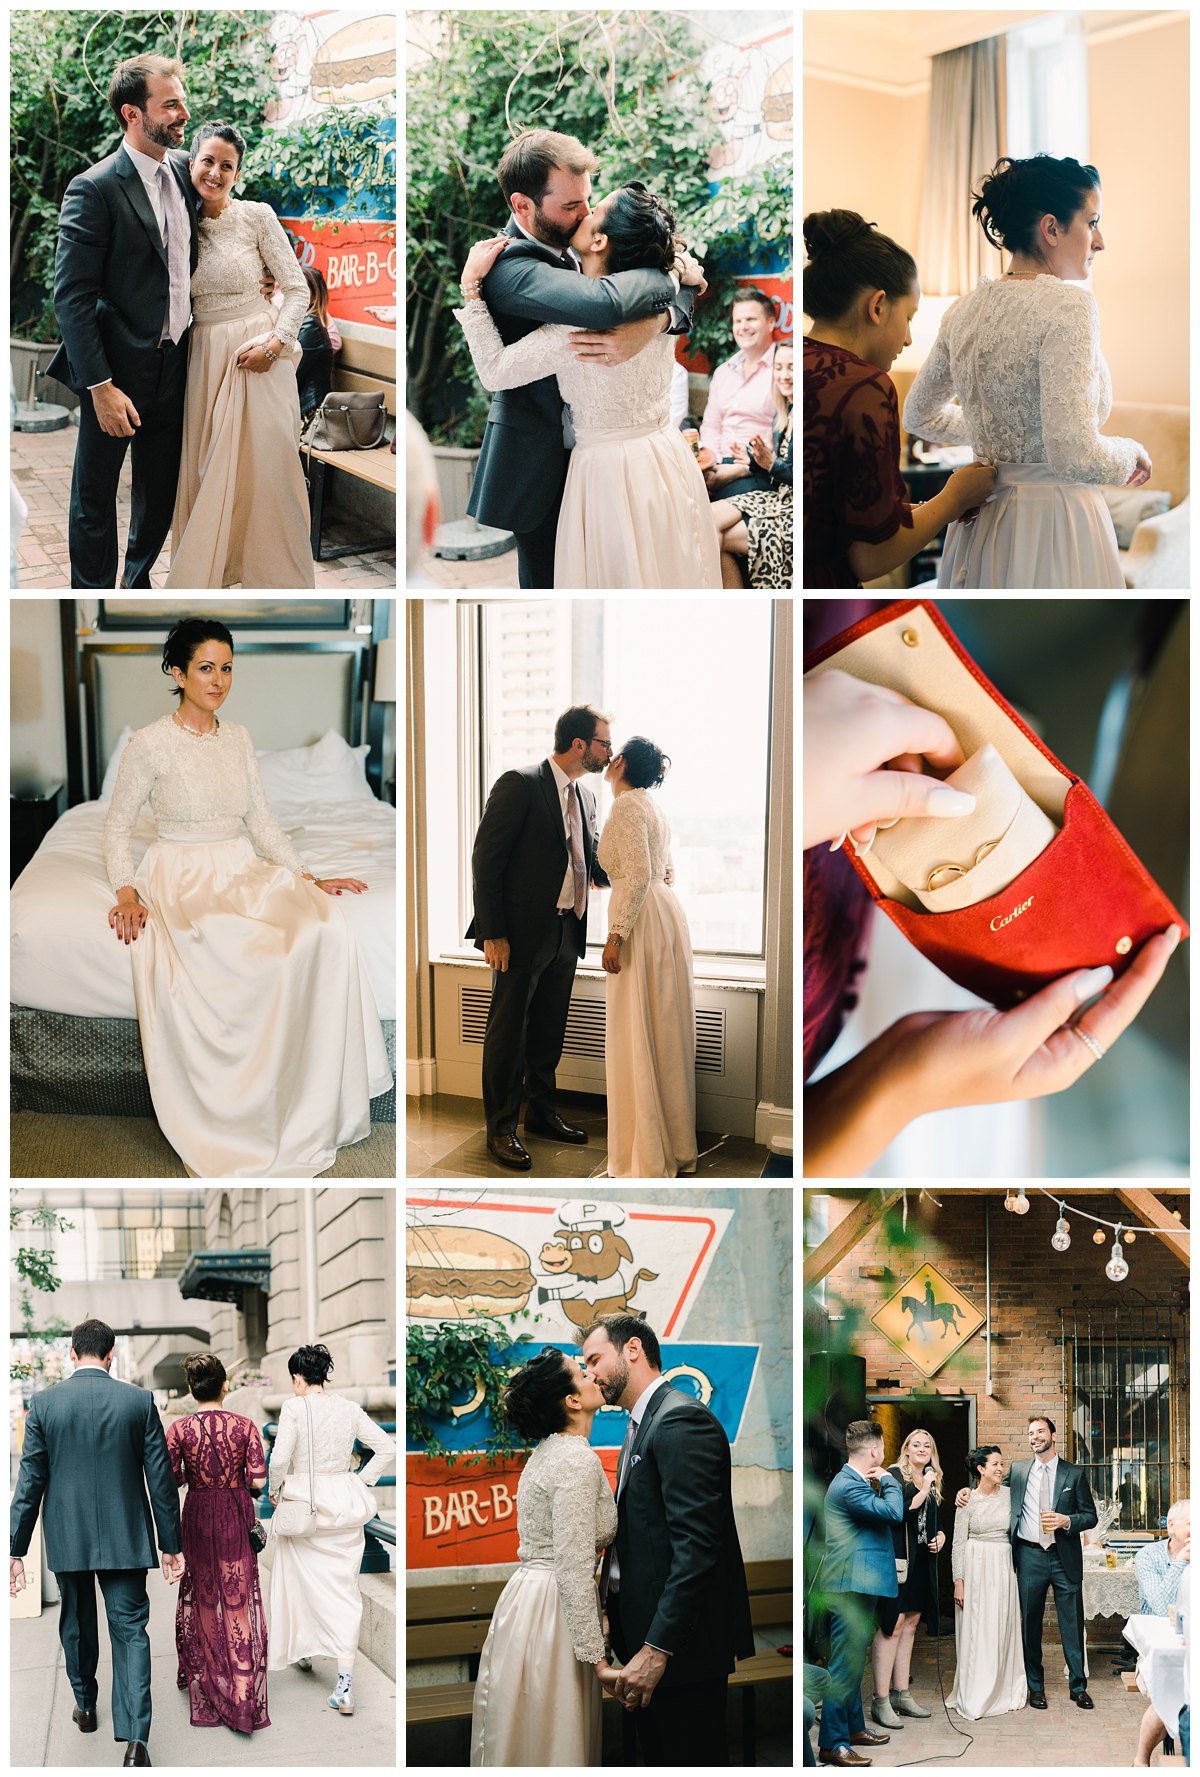 palomino_wedding_photographer (27 of 32).jpg